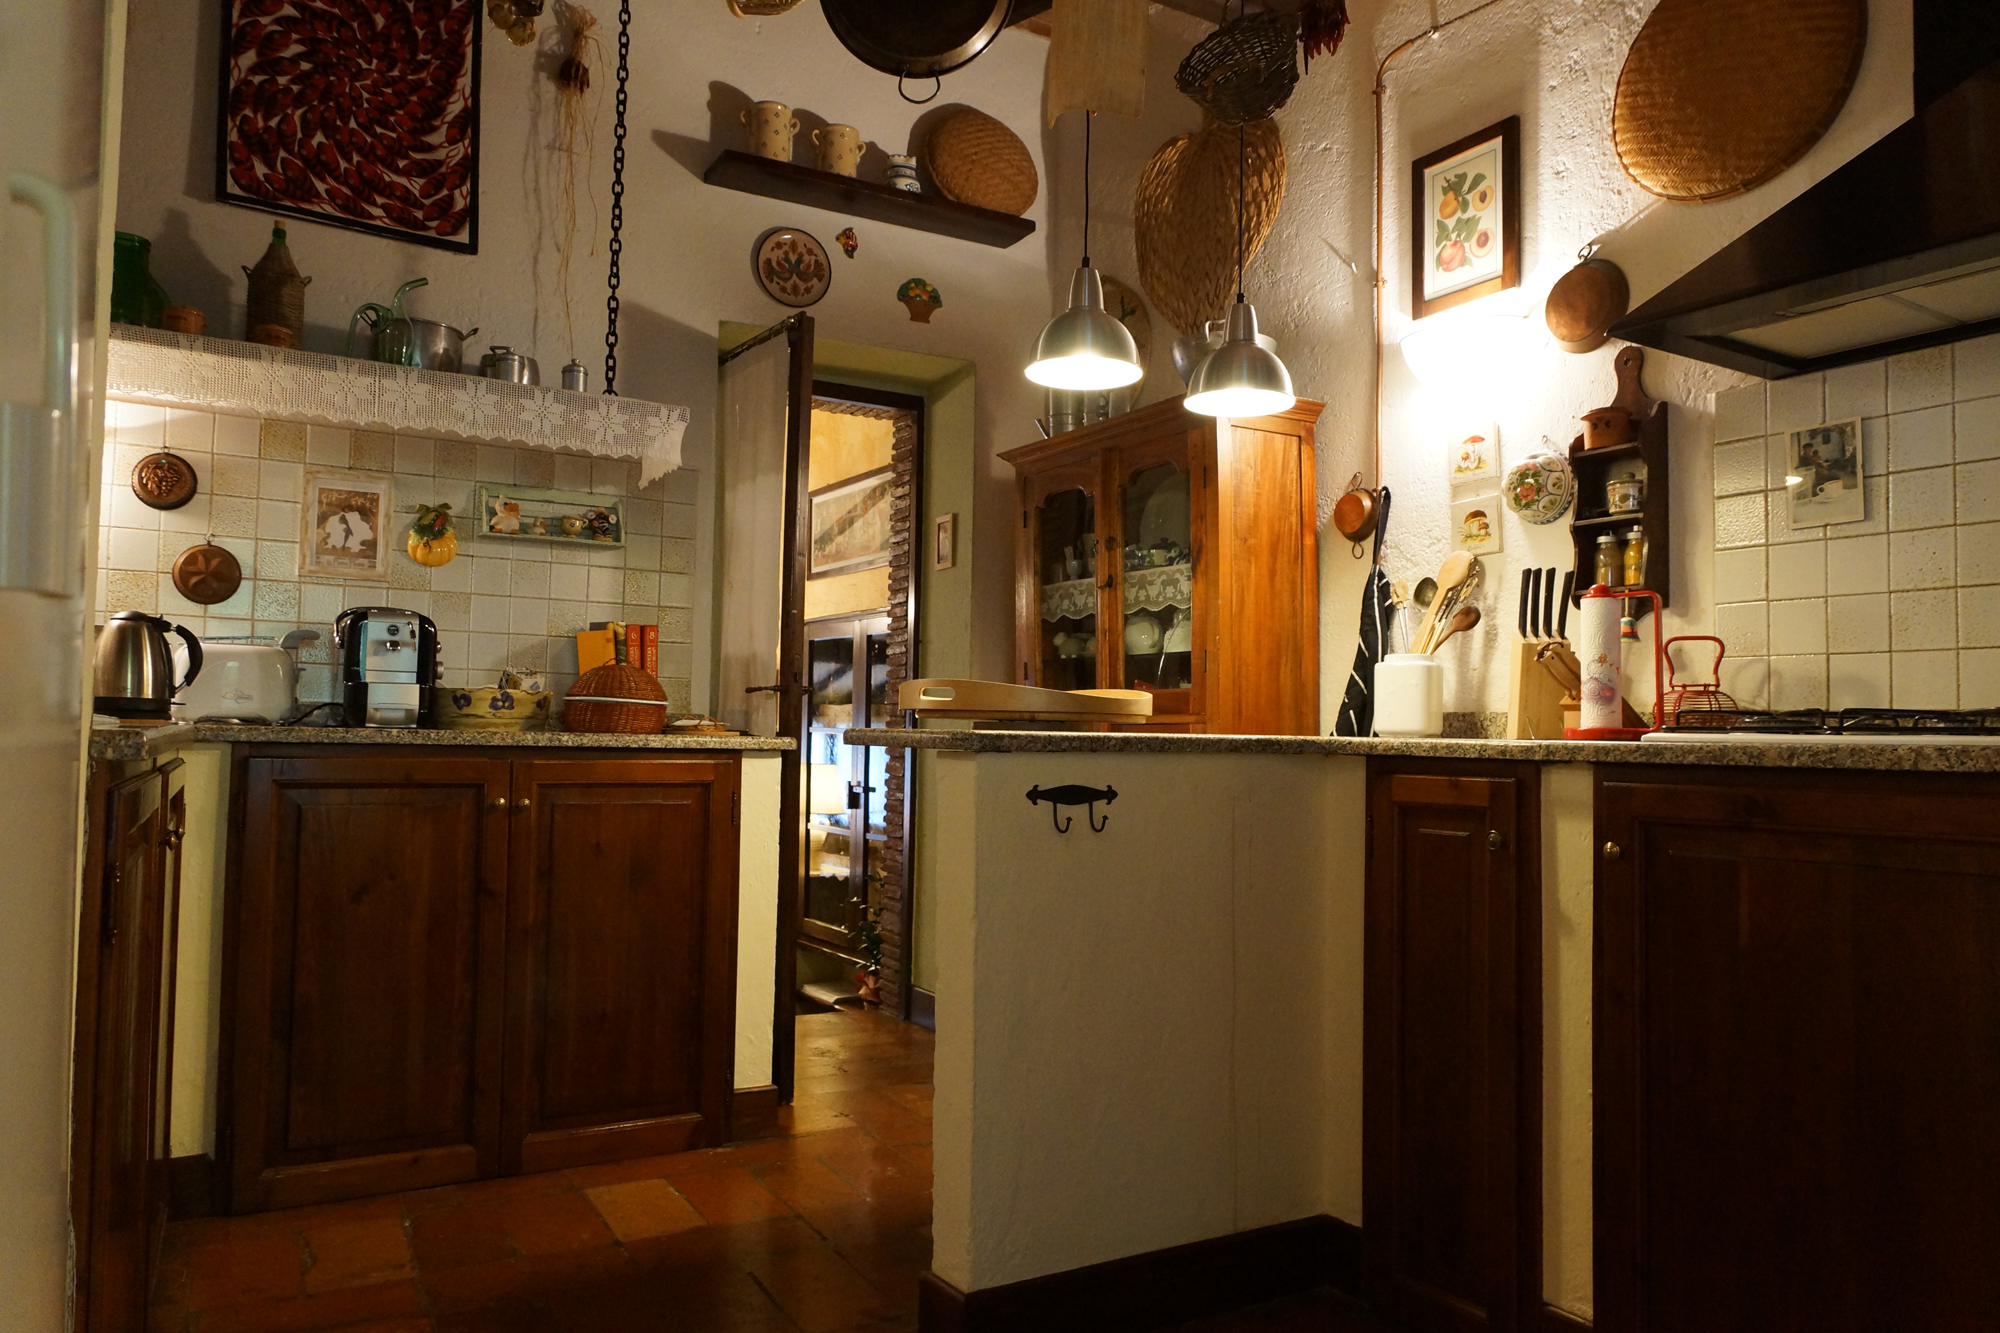 Vacanze in Umbria - Bed & Breakfast - umbria (MASSA MARTANA -  Perugia - PG) ~ cucina